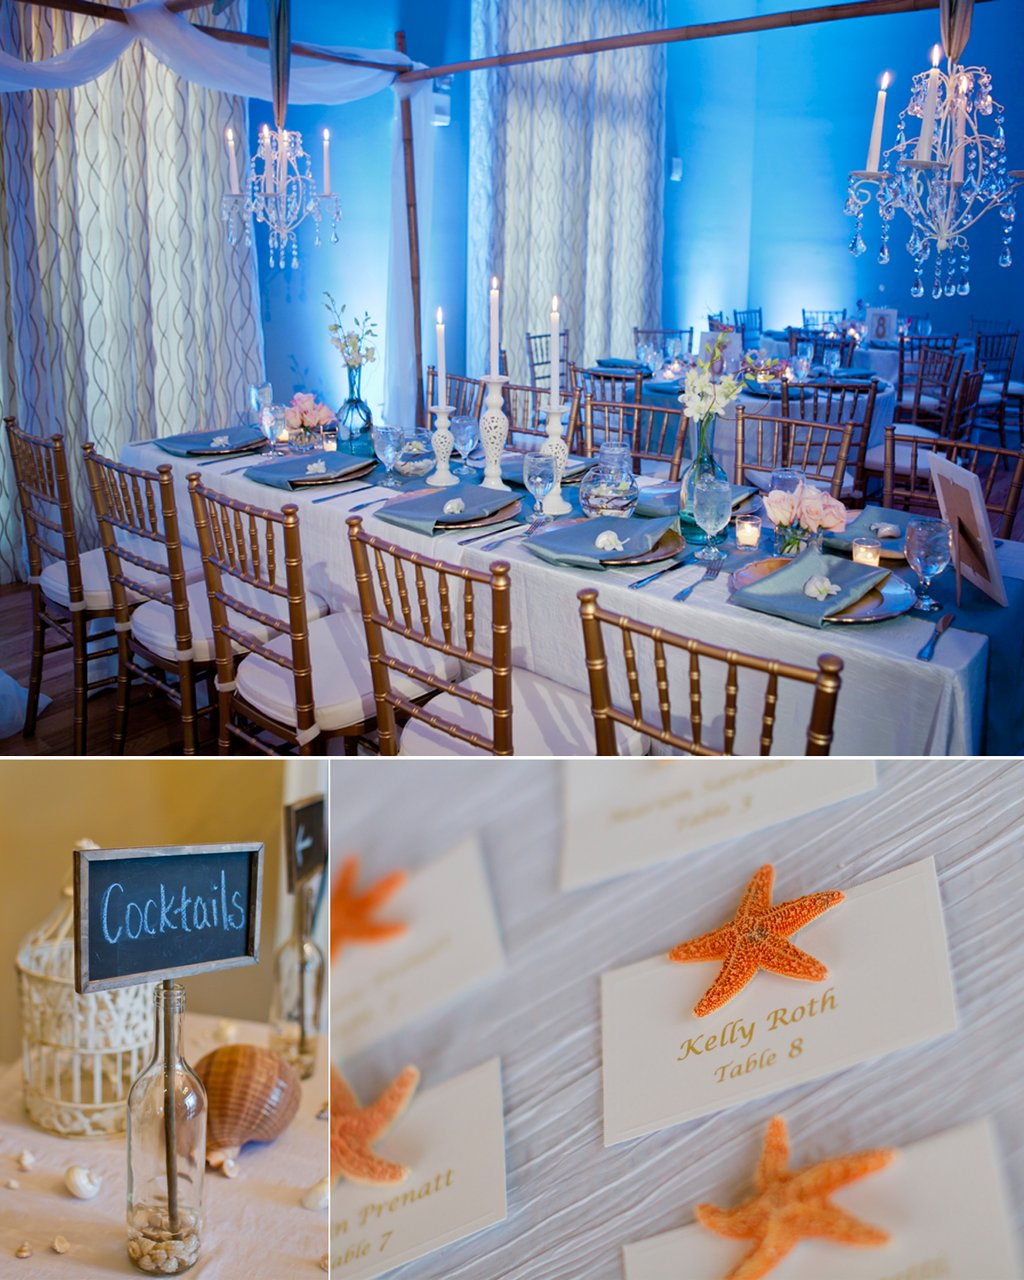 Beach Wedding Reception Ideas: Elegant Beach Inspired Wedding Reception Decor